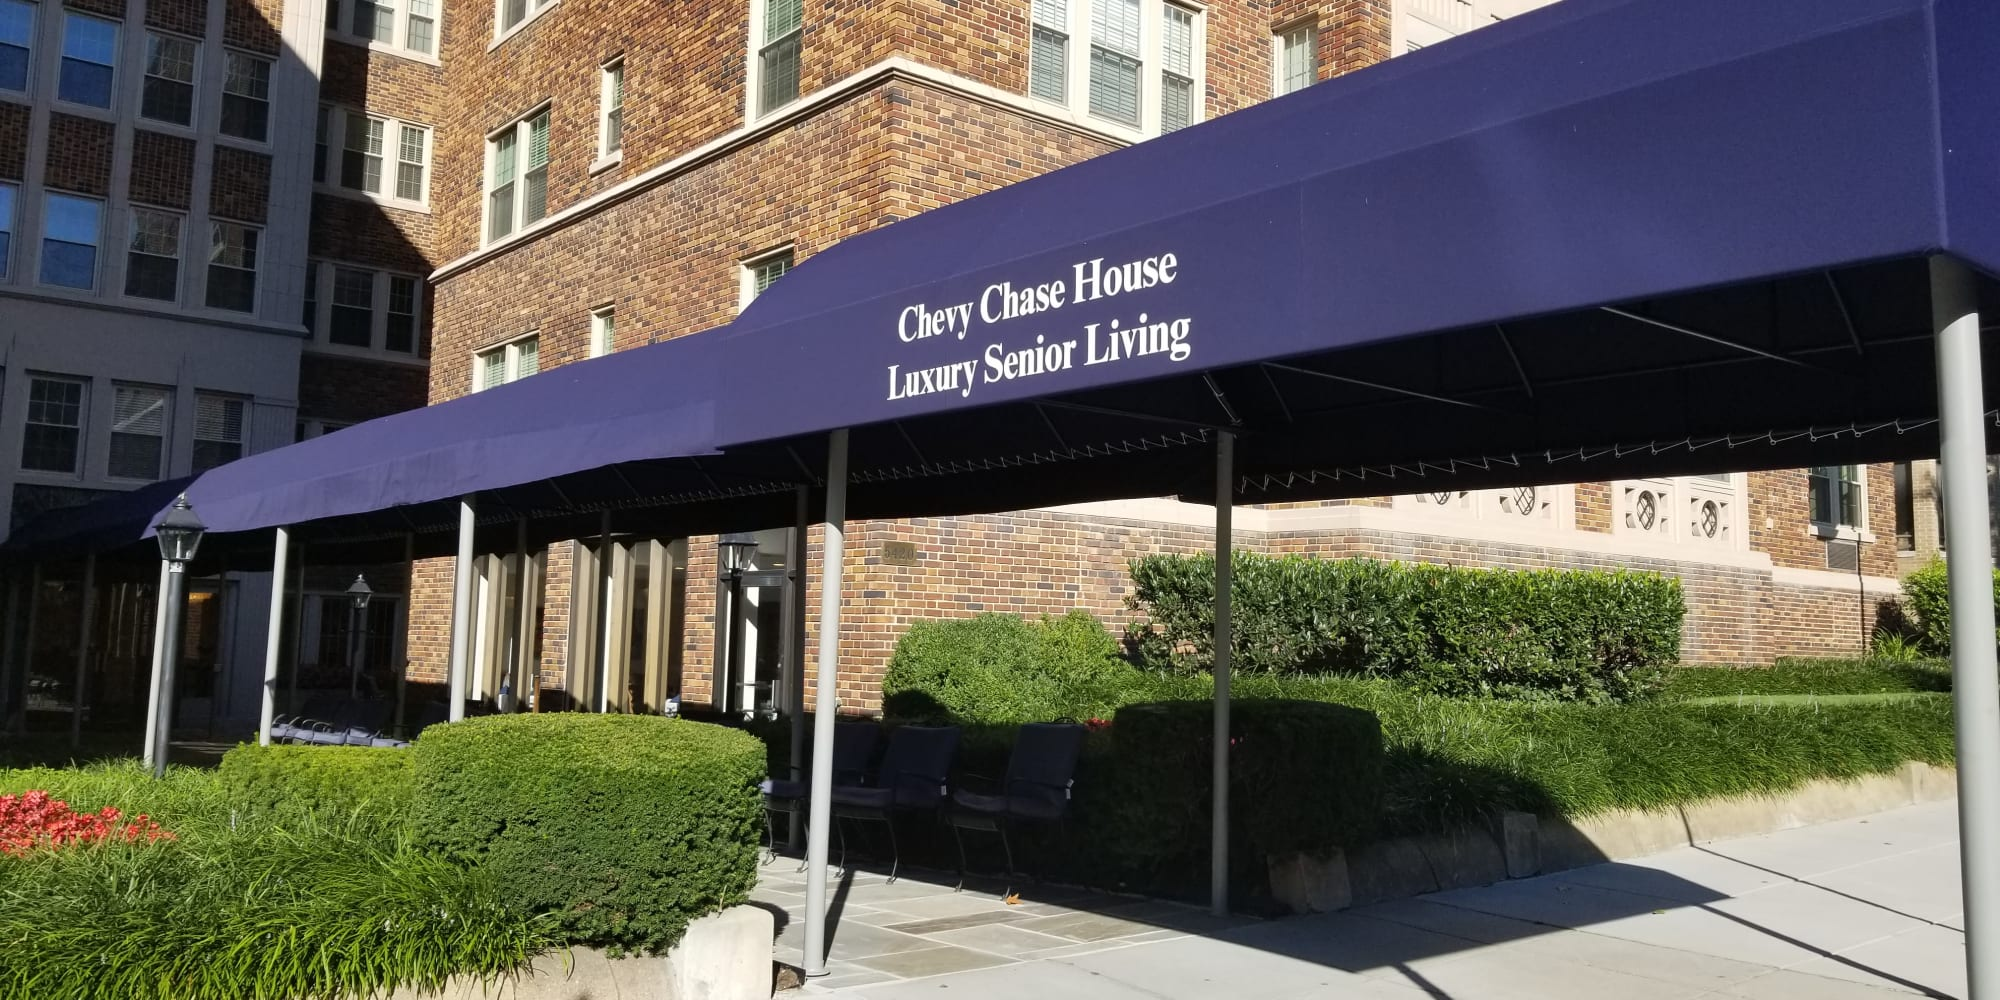 Chevy Chase House senior living in Washington, District of Columbia